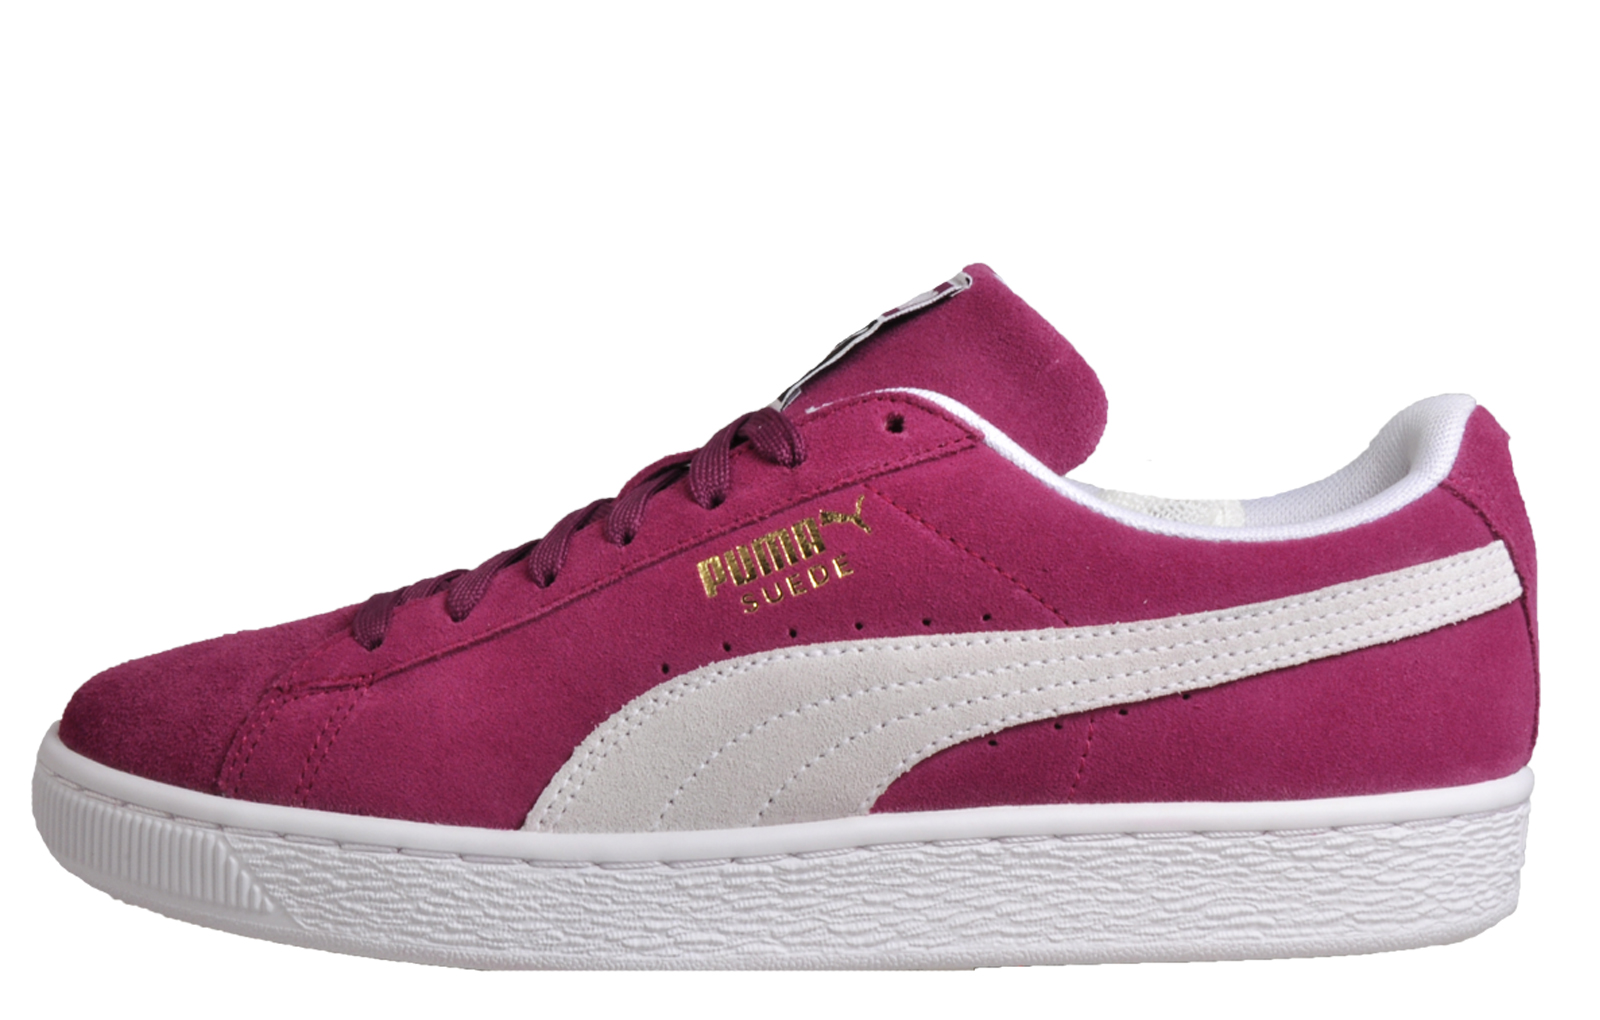 d18f768e29 Cheap Puma Trainers | Puma Shoes Sale | Express Trainers